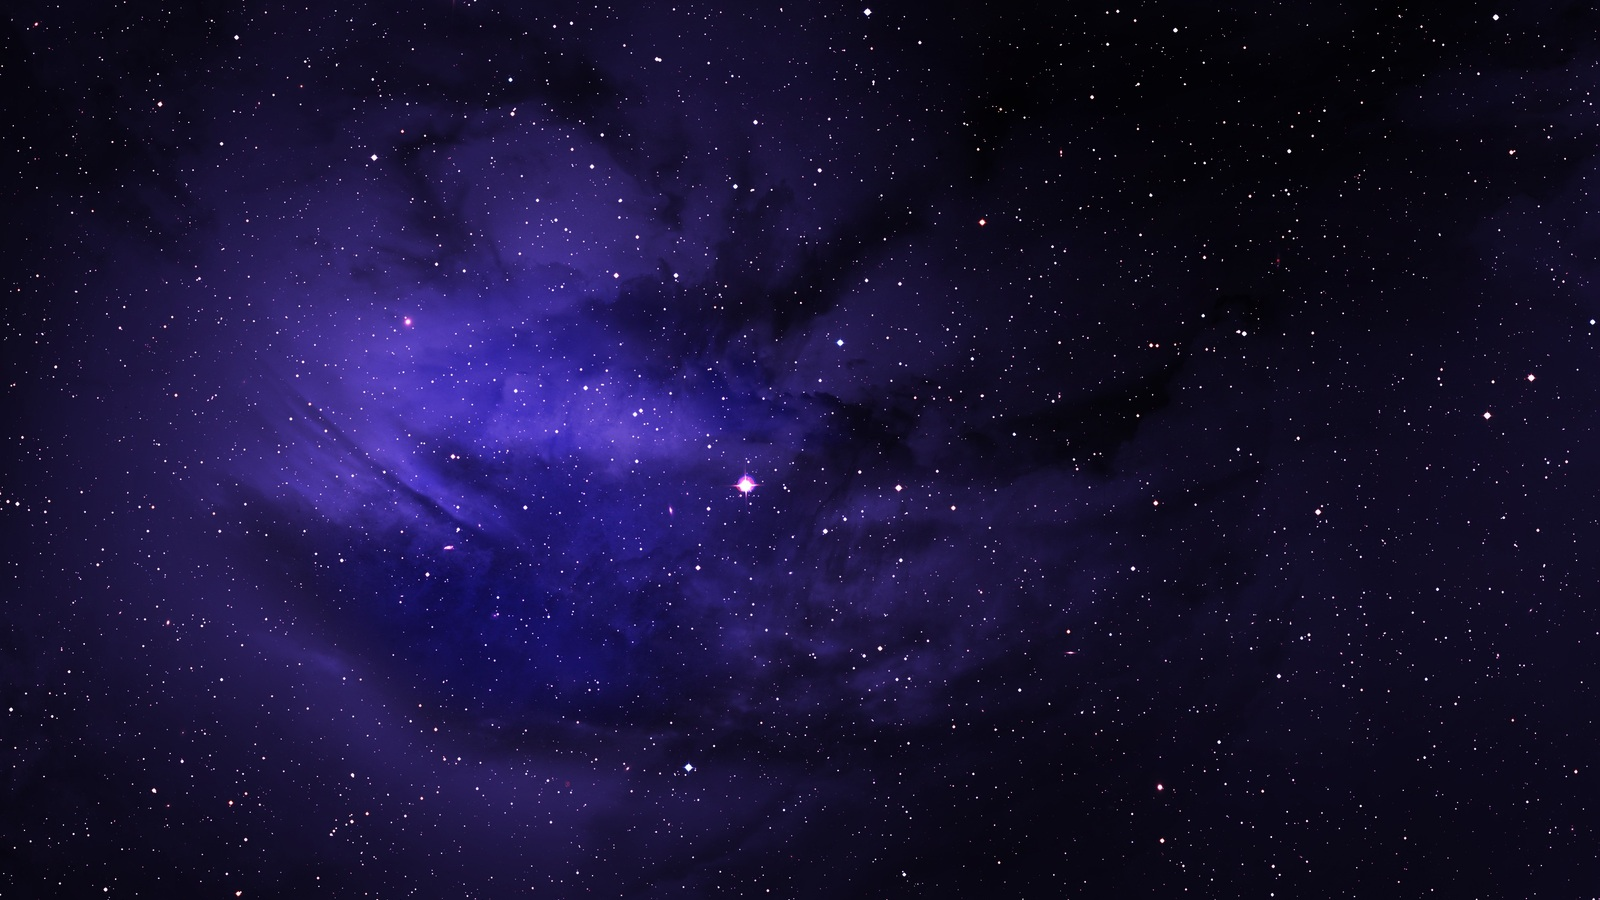 1600x900 Space Stars Purple Sky 1600x900 Resolution Hd 4k